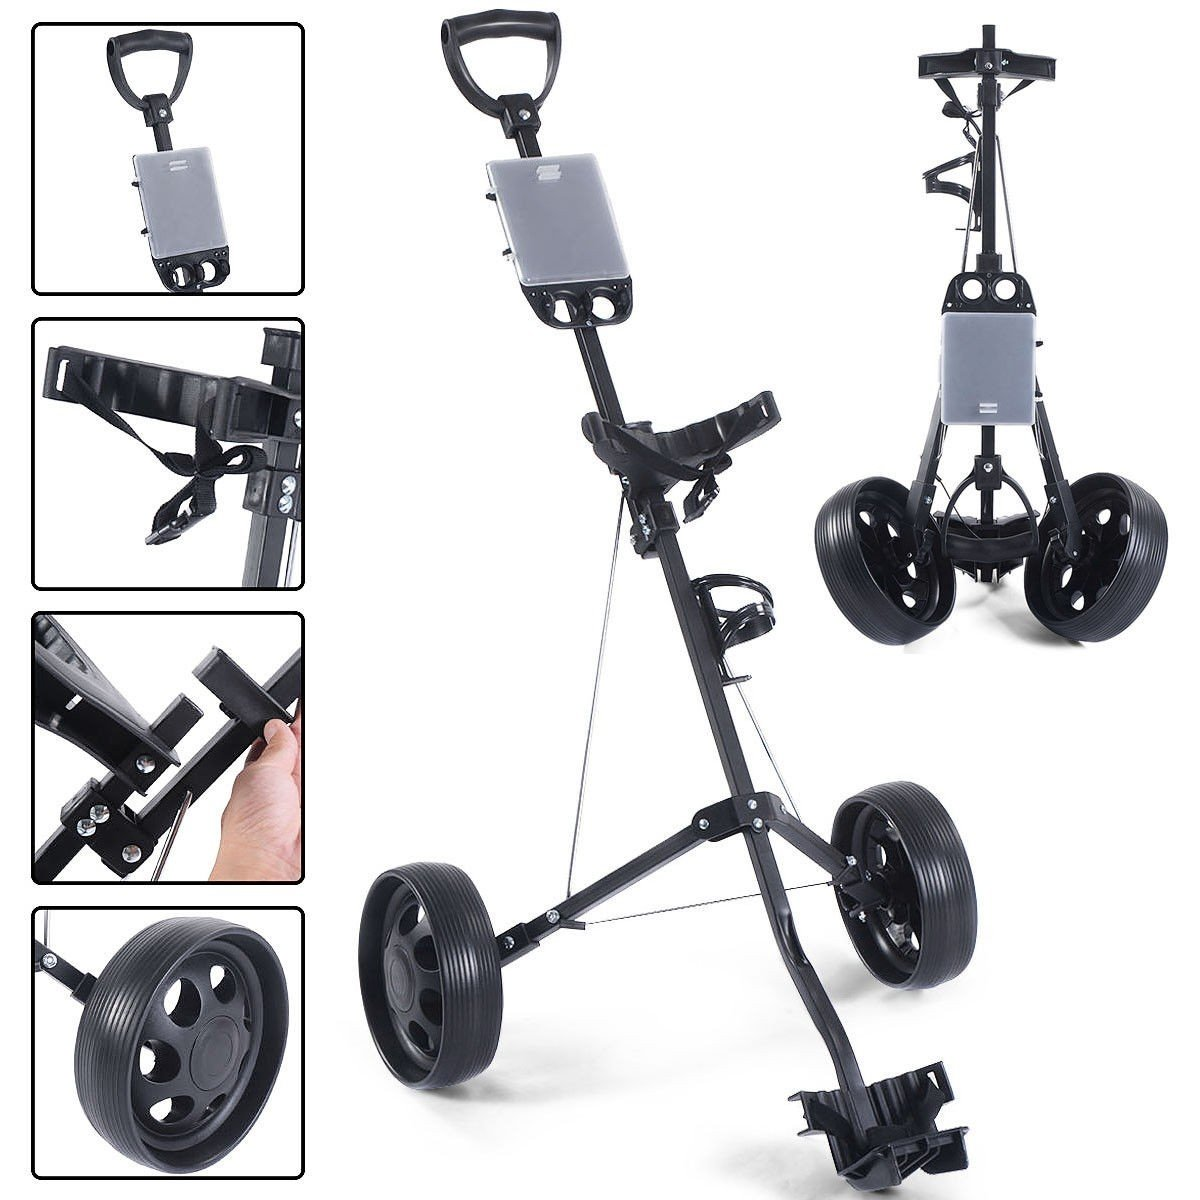 MD Group Golf Cart Holder Trolley Foldable 2 Wheels Push Pull Foldable Design Lightweight Equipment by MD Group (Image #9)